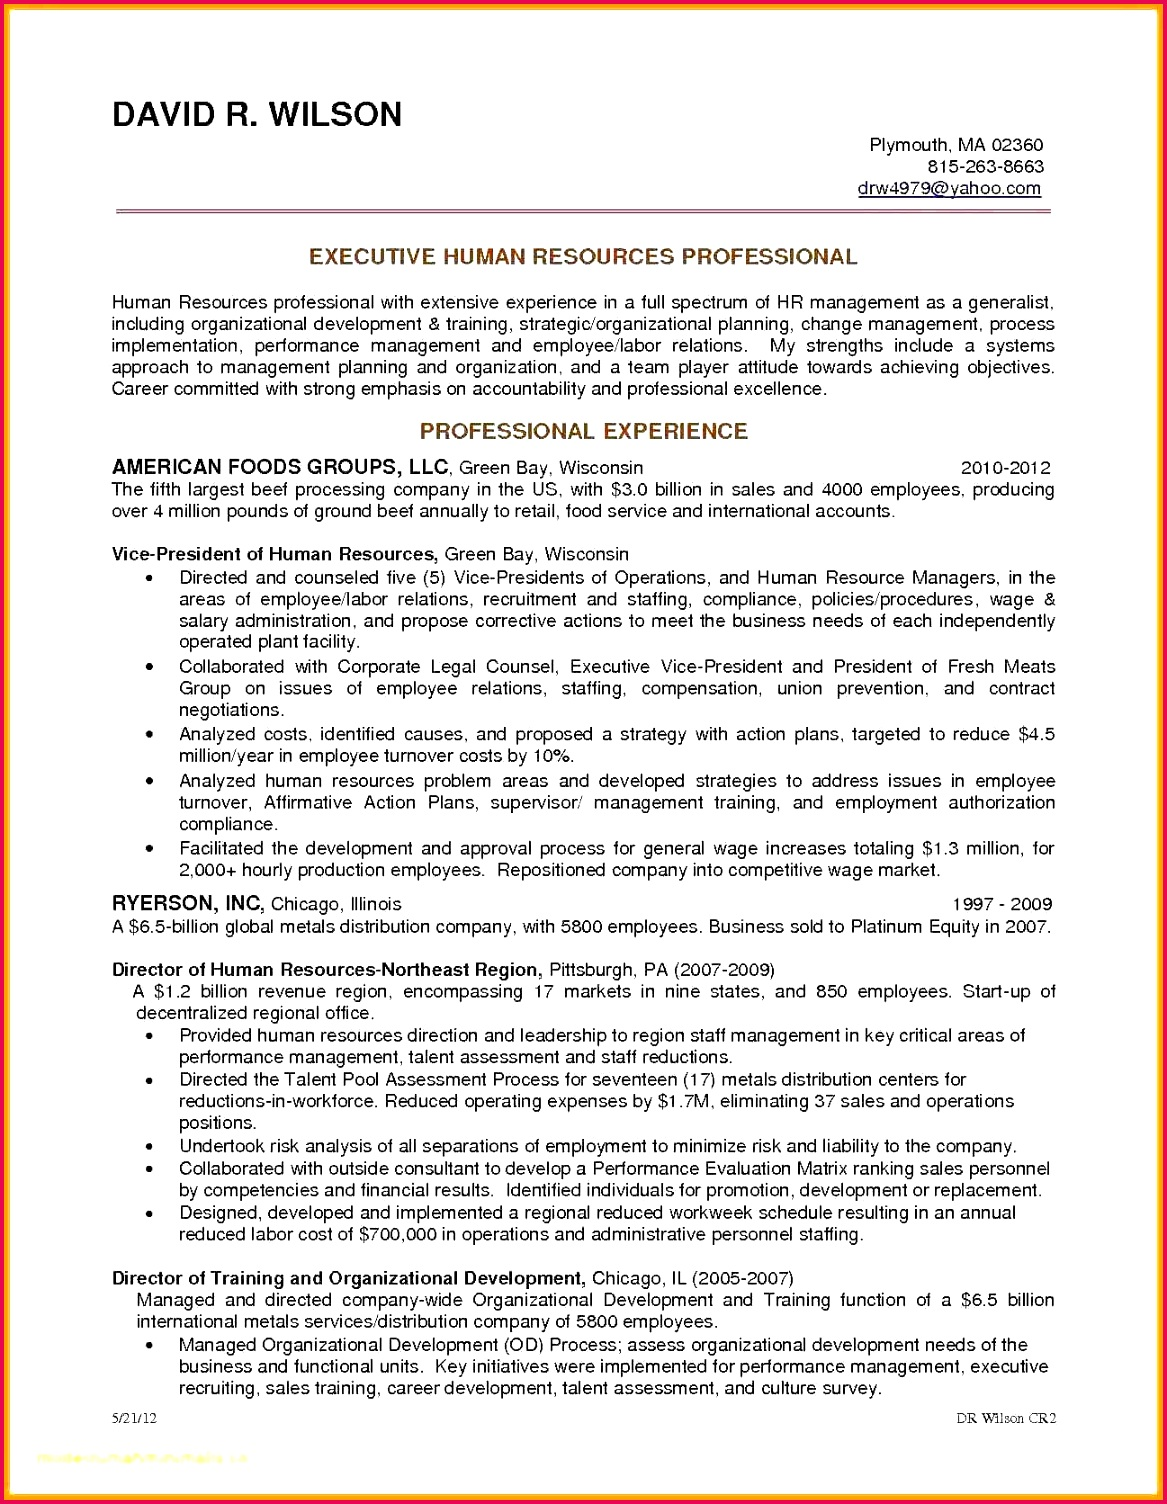 resume examples for quality engineers cool image quality assurance engineer cover letter new 42 new engineering cover of resume examples for quality engineers